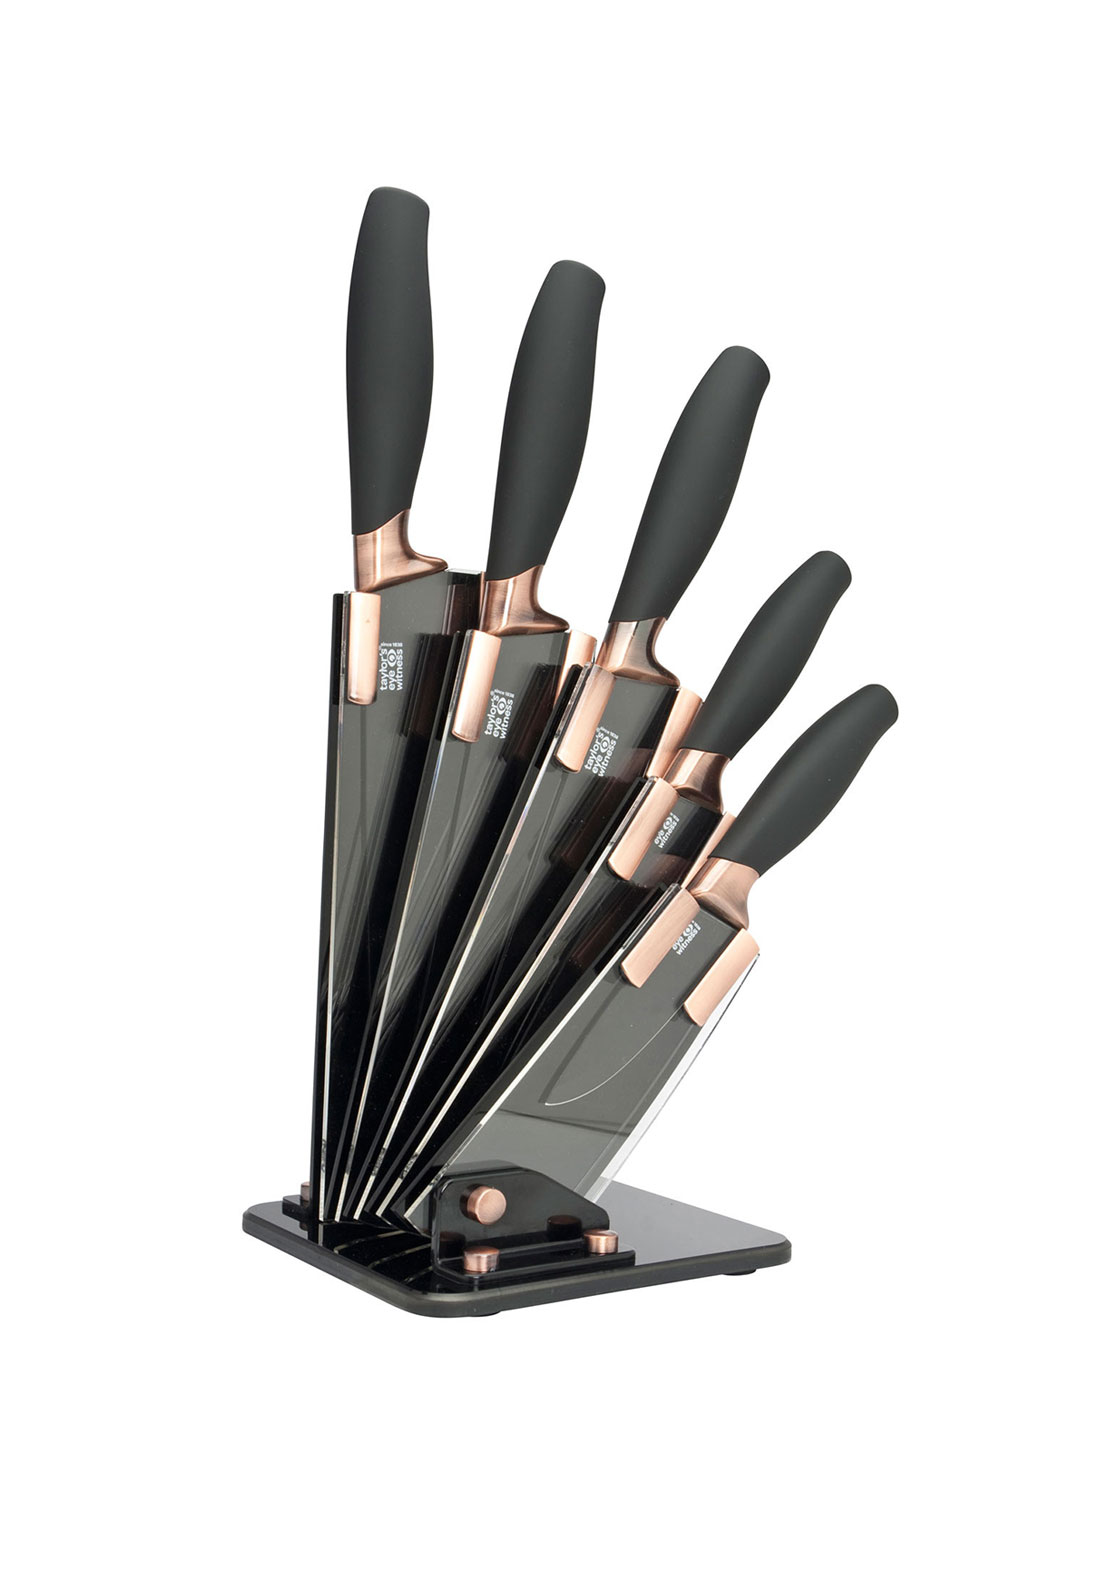 Taylor's eye witness 5 Piece Knife Block Set